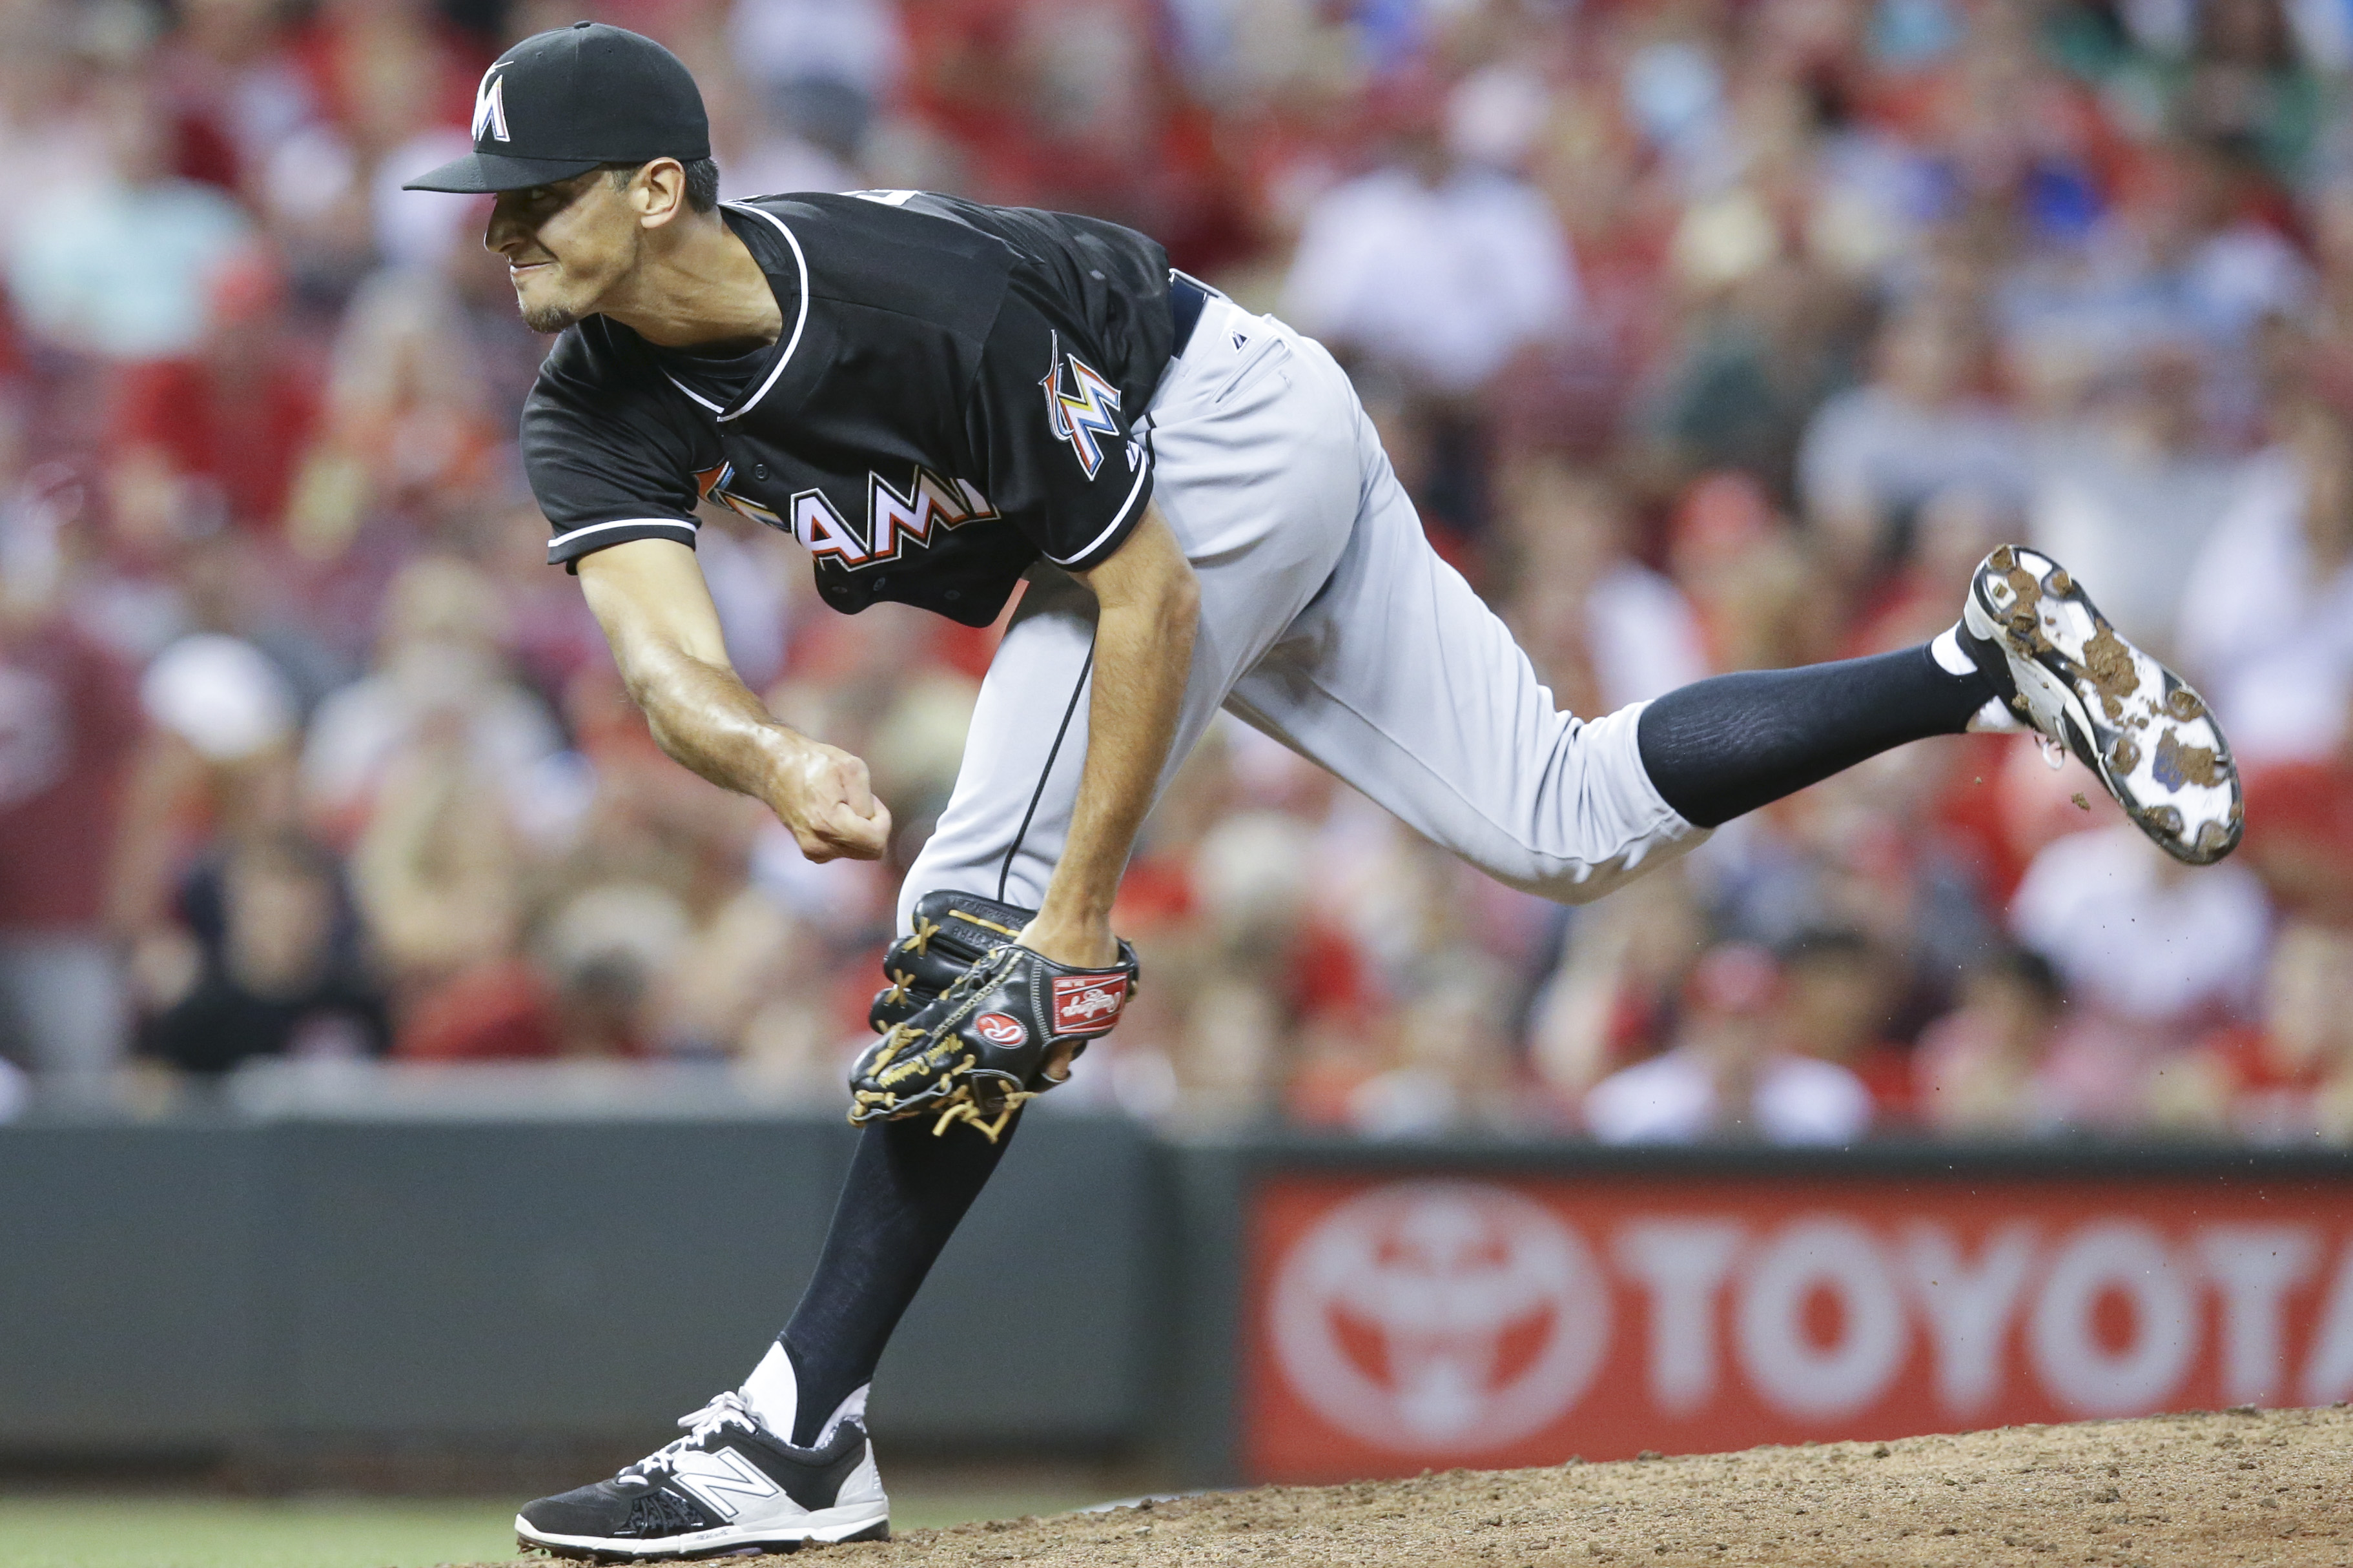 Miami Marlins' Steve Cishek throws in the seventh inning of a baseball game against the Cincinnati Reds, Friday, June 19, 2015, in Cincinnati. The Reds won 5-0. (AP Photo/John Minchillo)